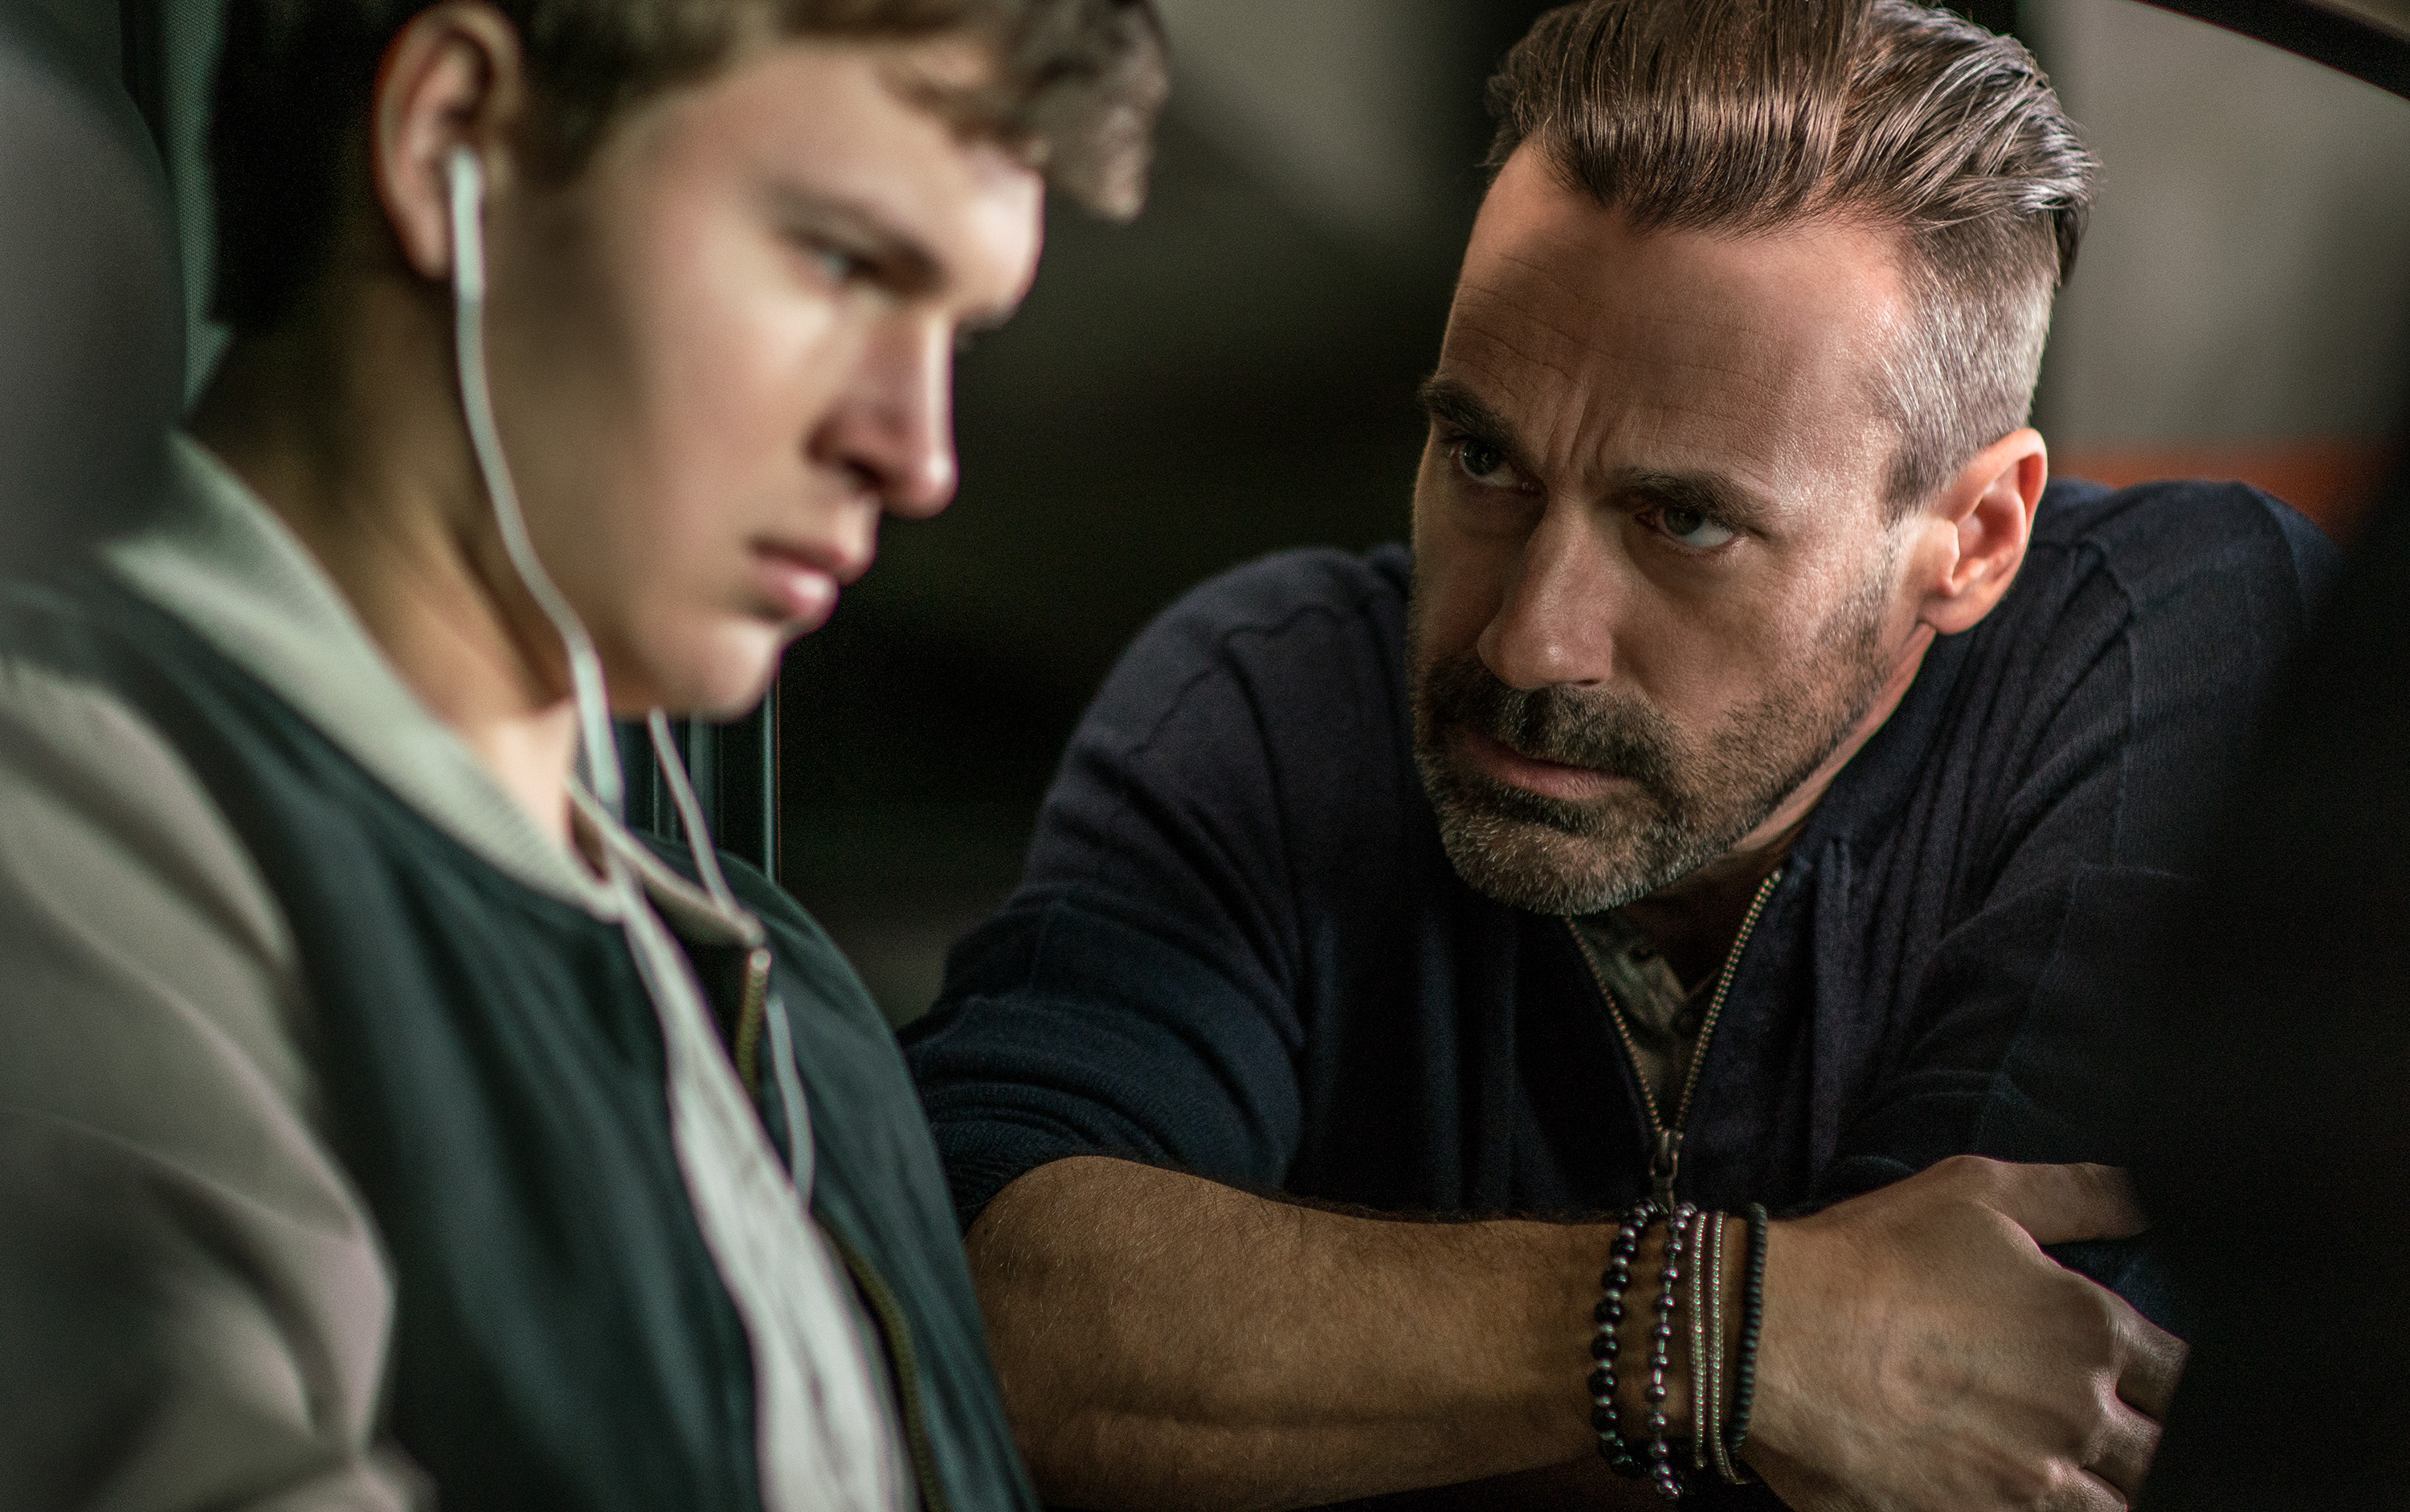 Buddy (JON HAMM) confronts Baby (ANSEL ELGORT) in TriStar Pictures' BABY DRIVER. Photo: Courtesy of TriStar Pictures, Inc. and MRC II Distribution Company.